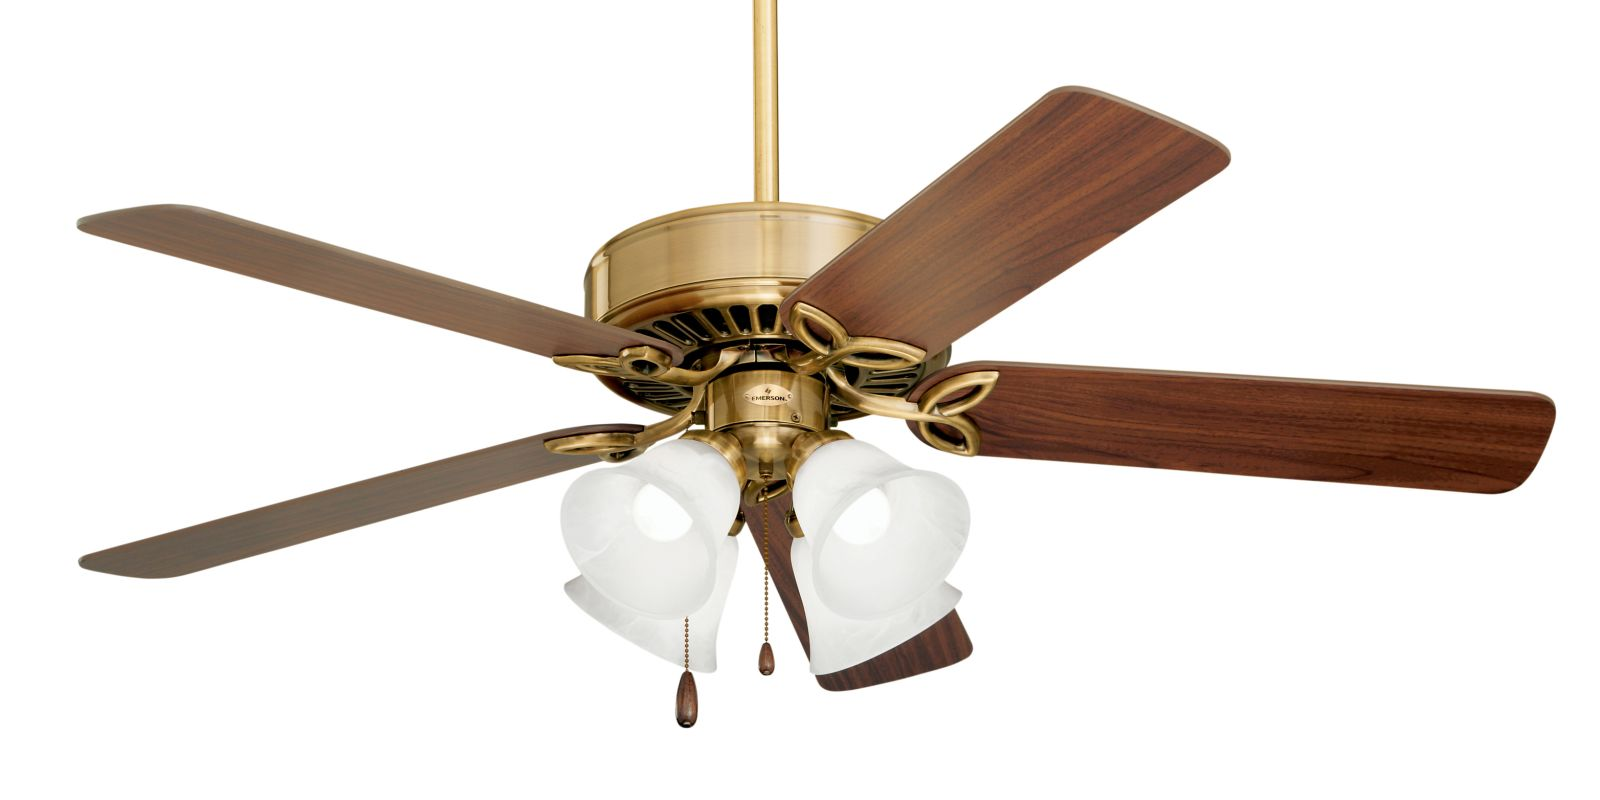 """Emerson CF711 Builder Plus 50"""" 5 Blade Ceiling Fan - Blades and Light"""